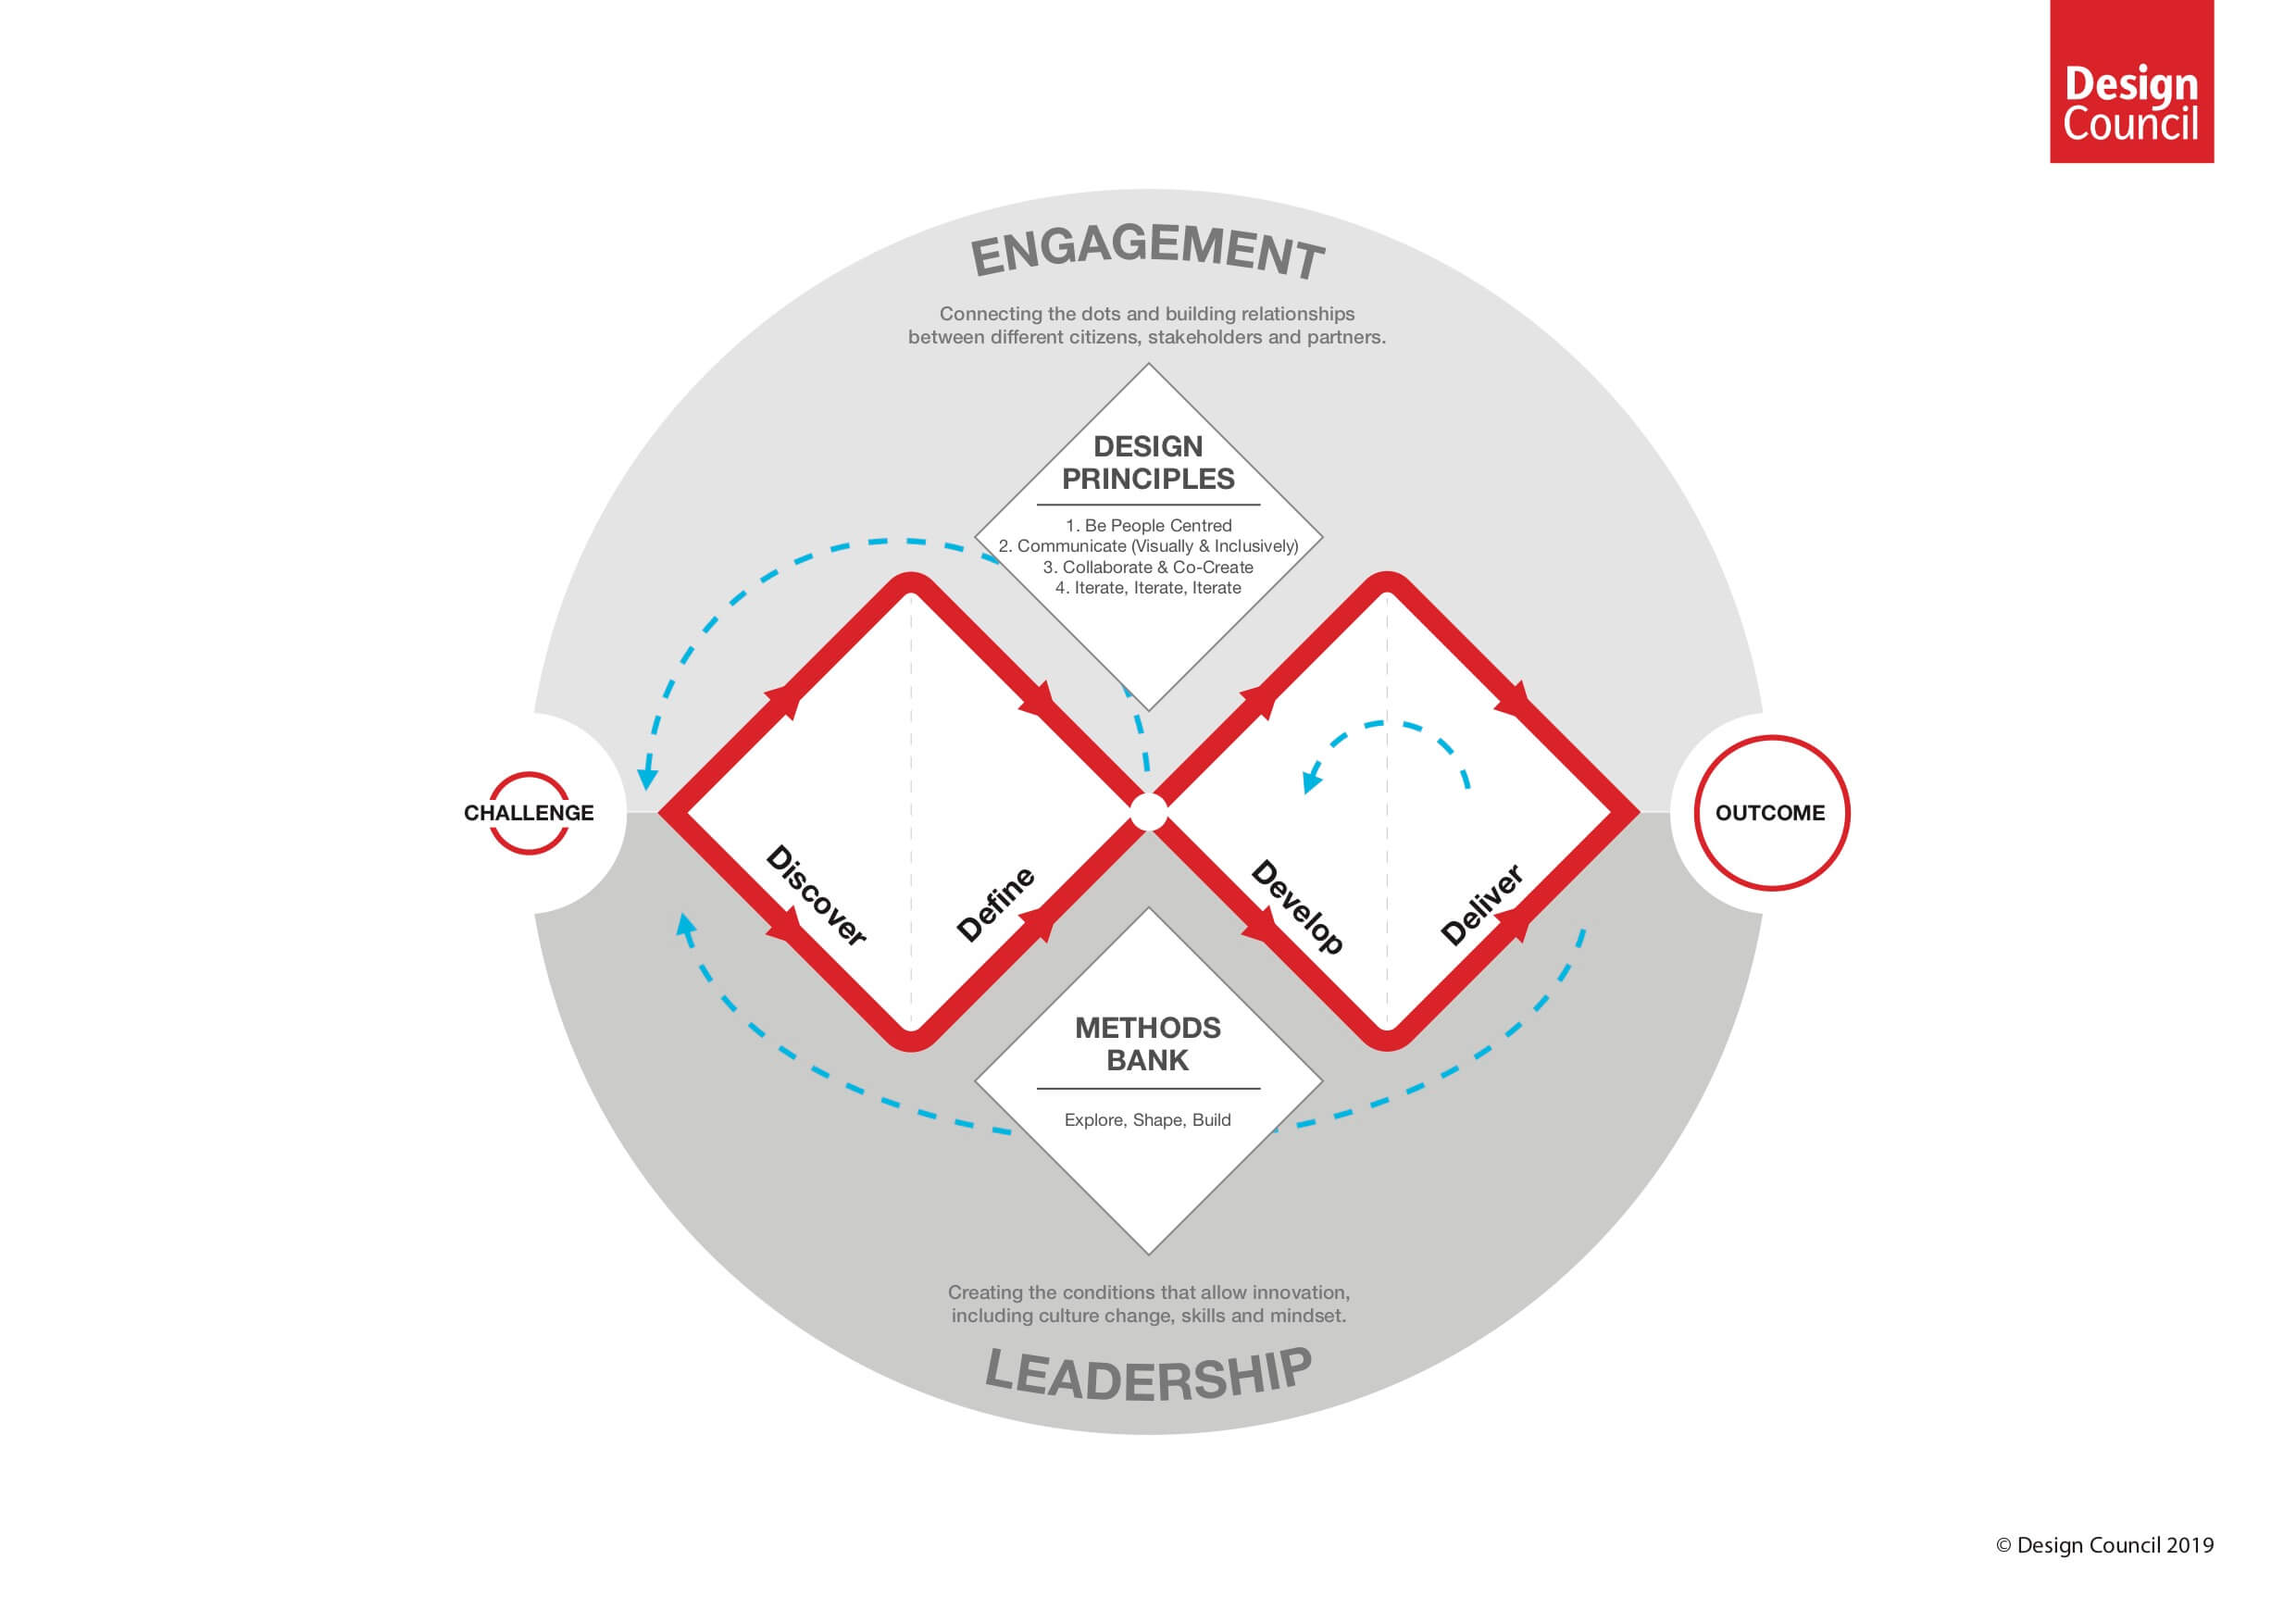 Double Diamond Model from the Design Council